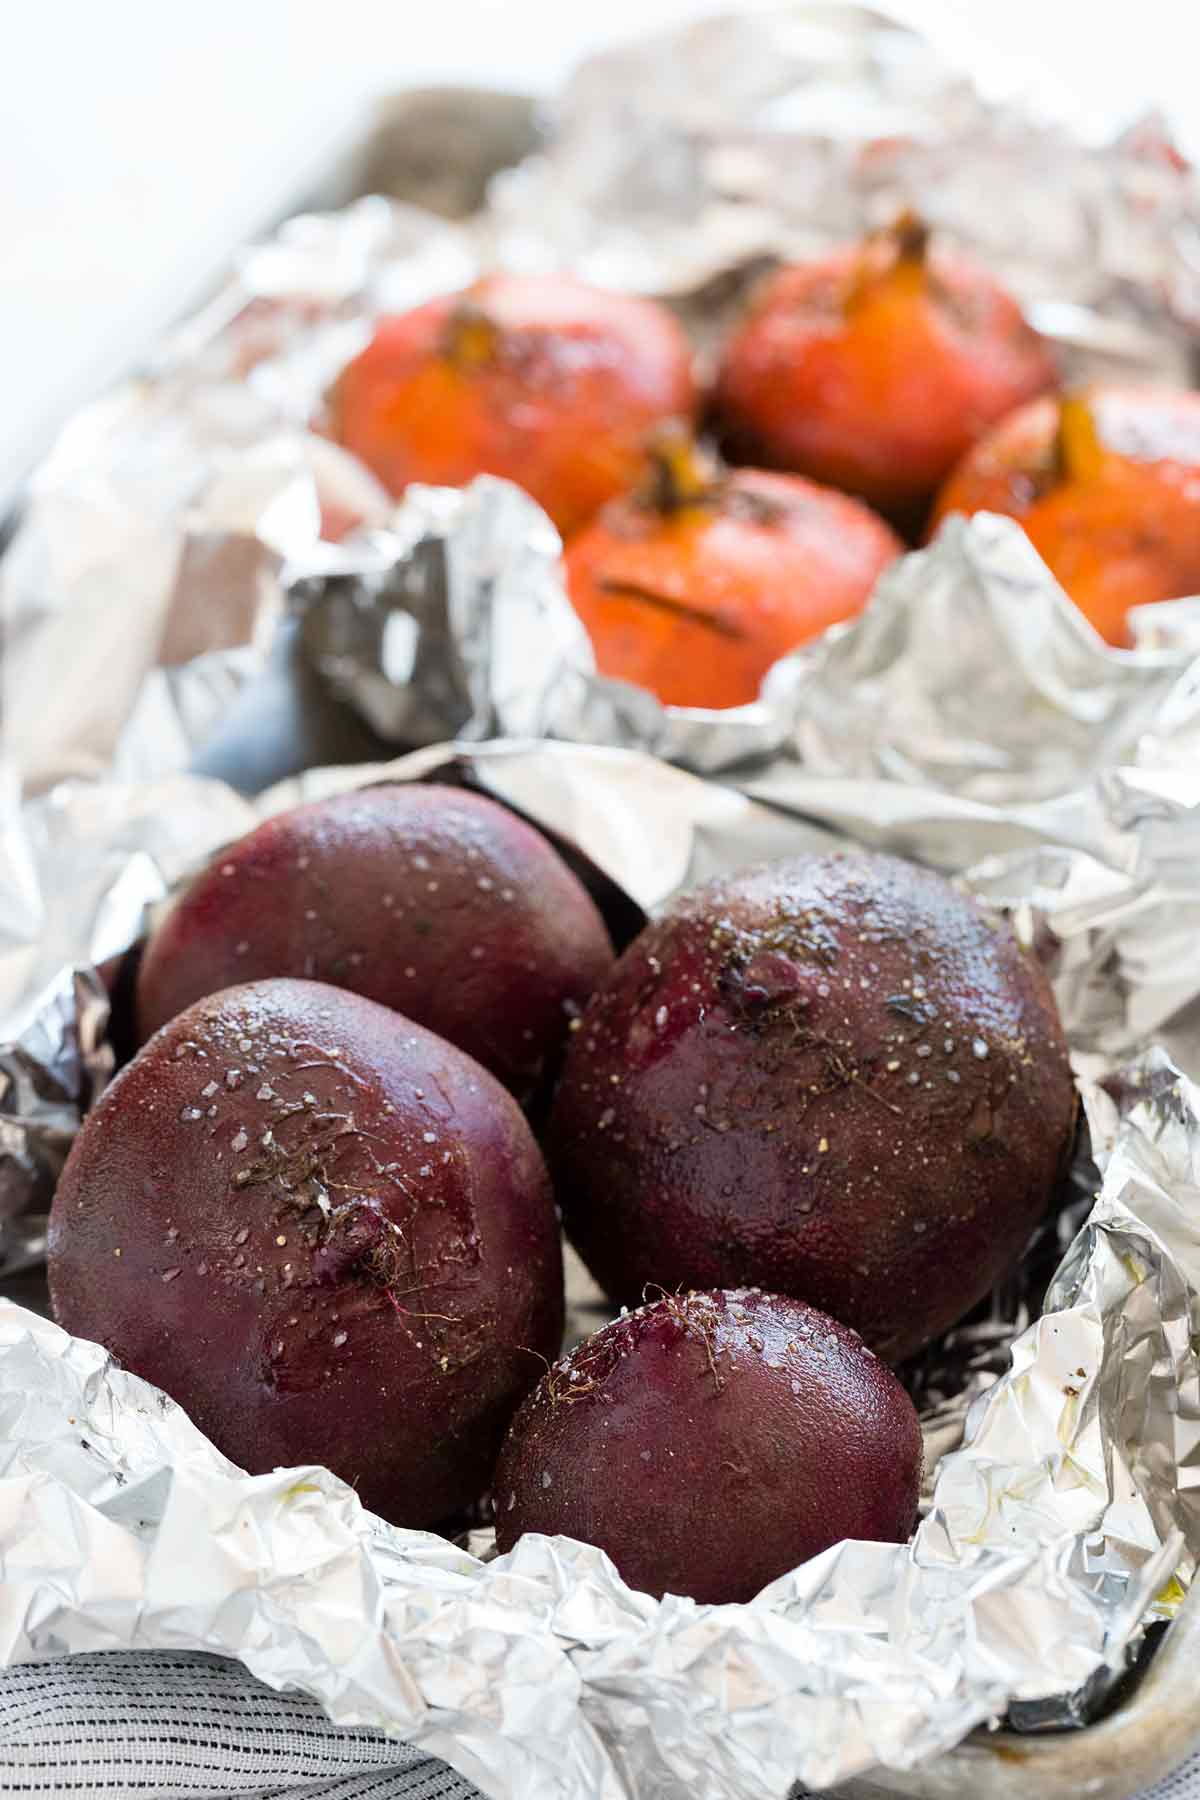 whole roasting purple and gold beets in aluminum foil